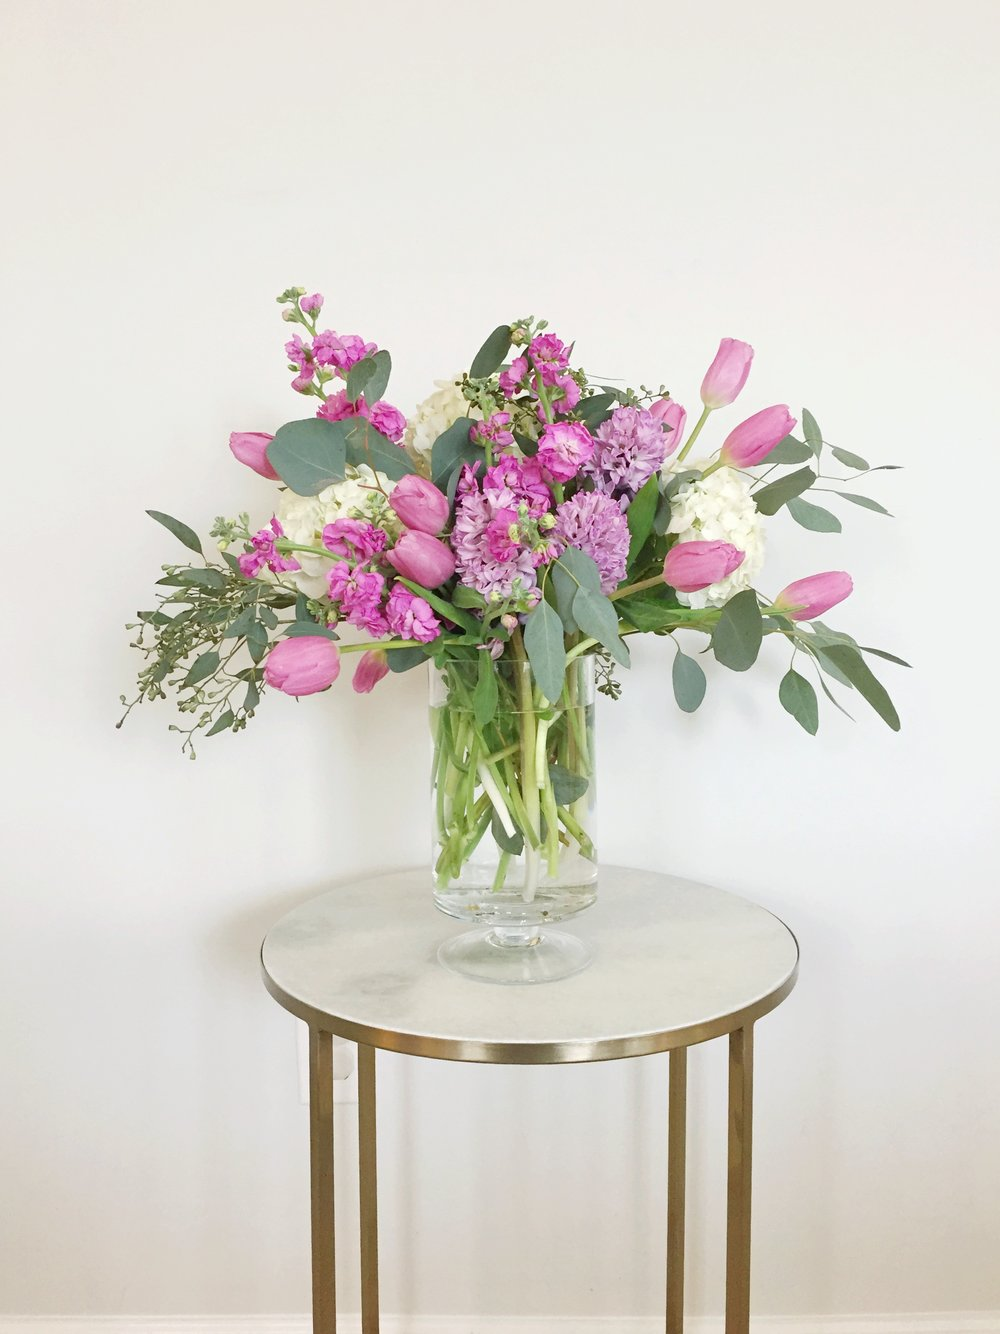 how to create a centerpiece using grocery store flowers from trader joe's